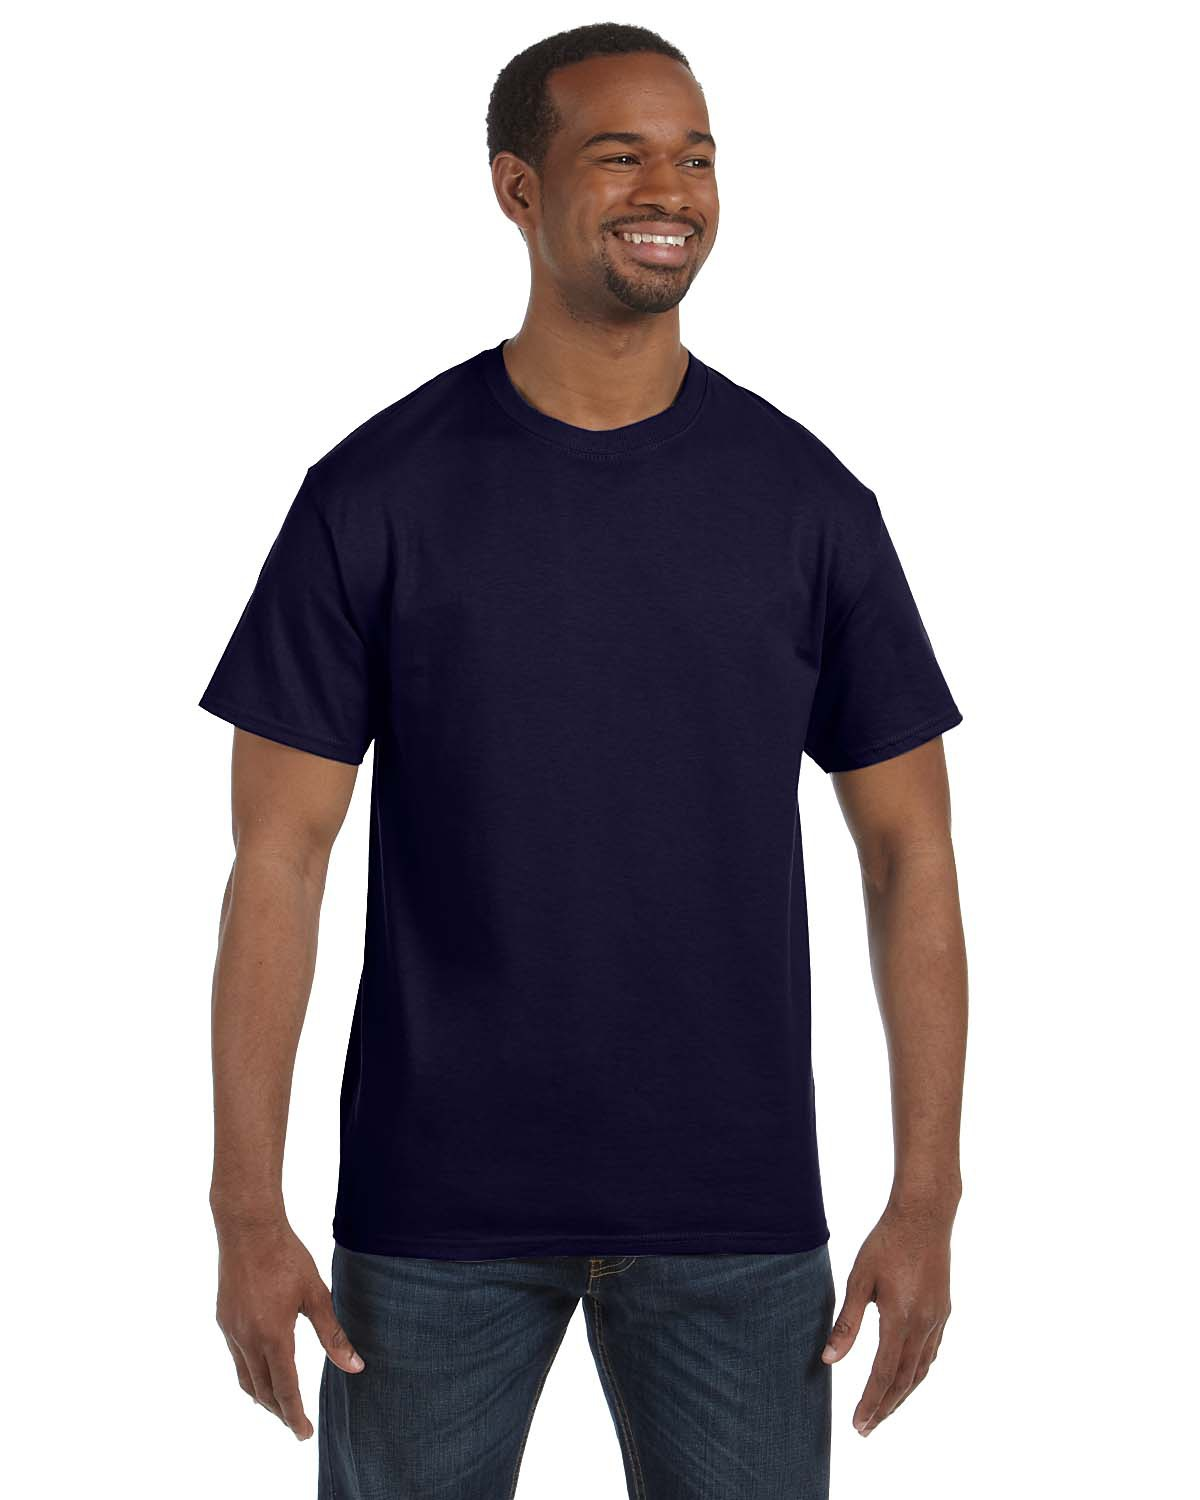 Gildan G5000 Heavy Cotton 5.3oz Tee